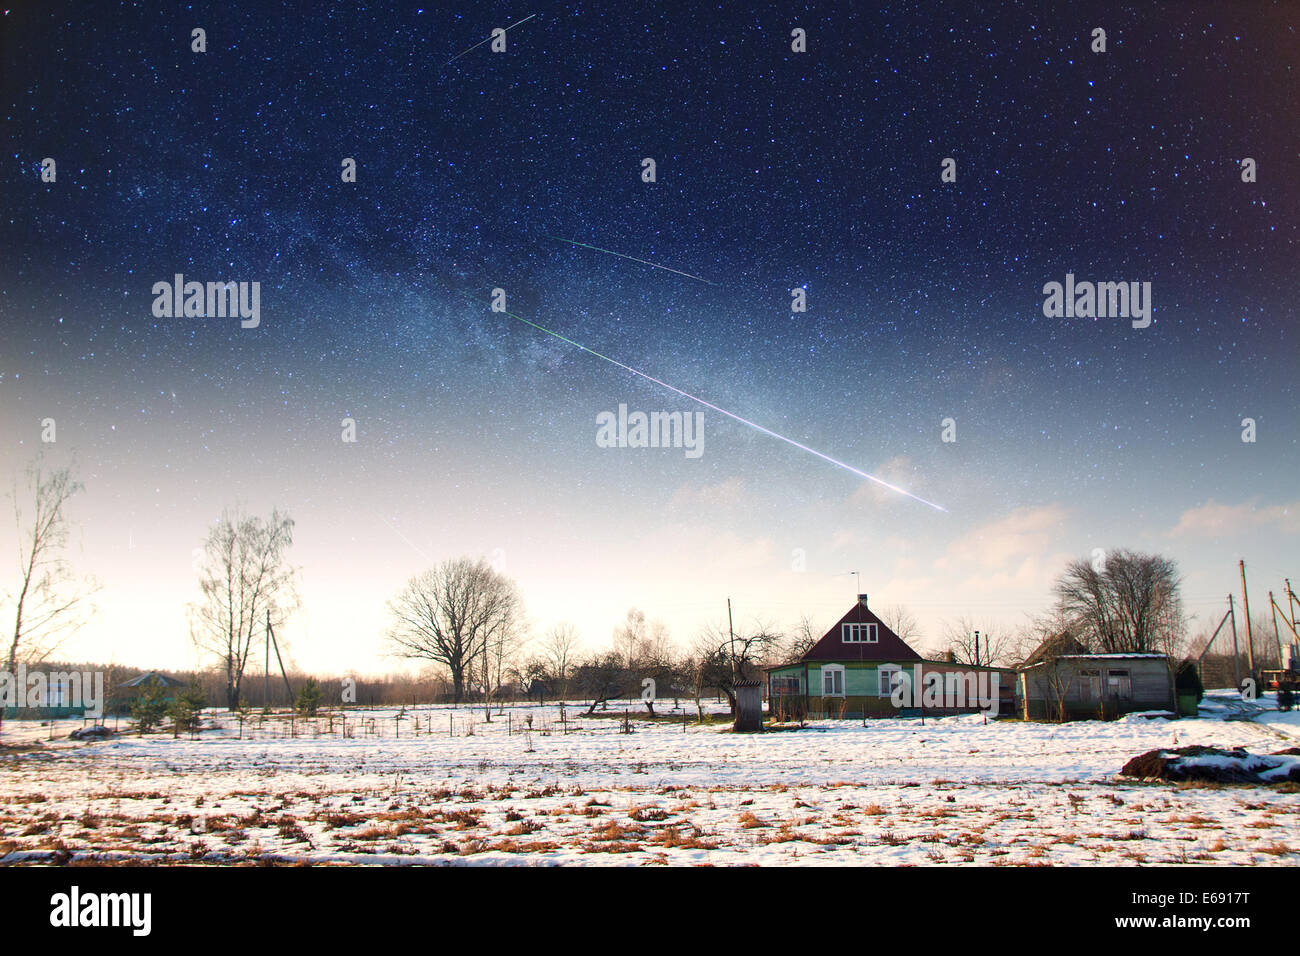 village in winter.  Elements of this image furnished by NASA - Stock Image